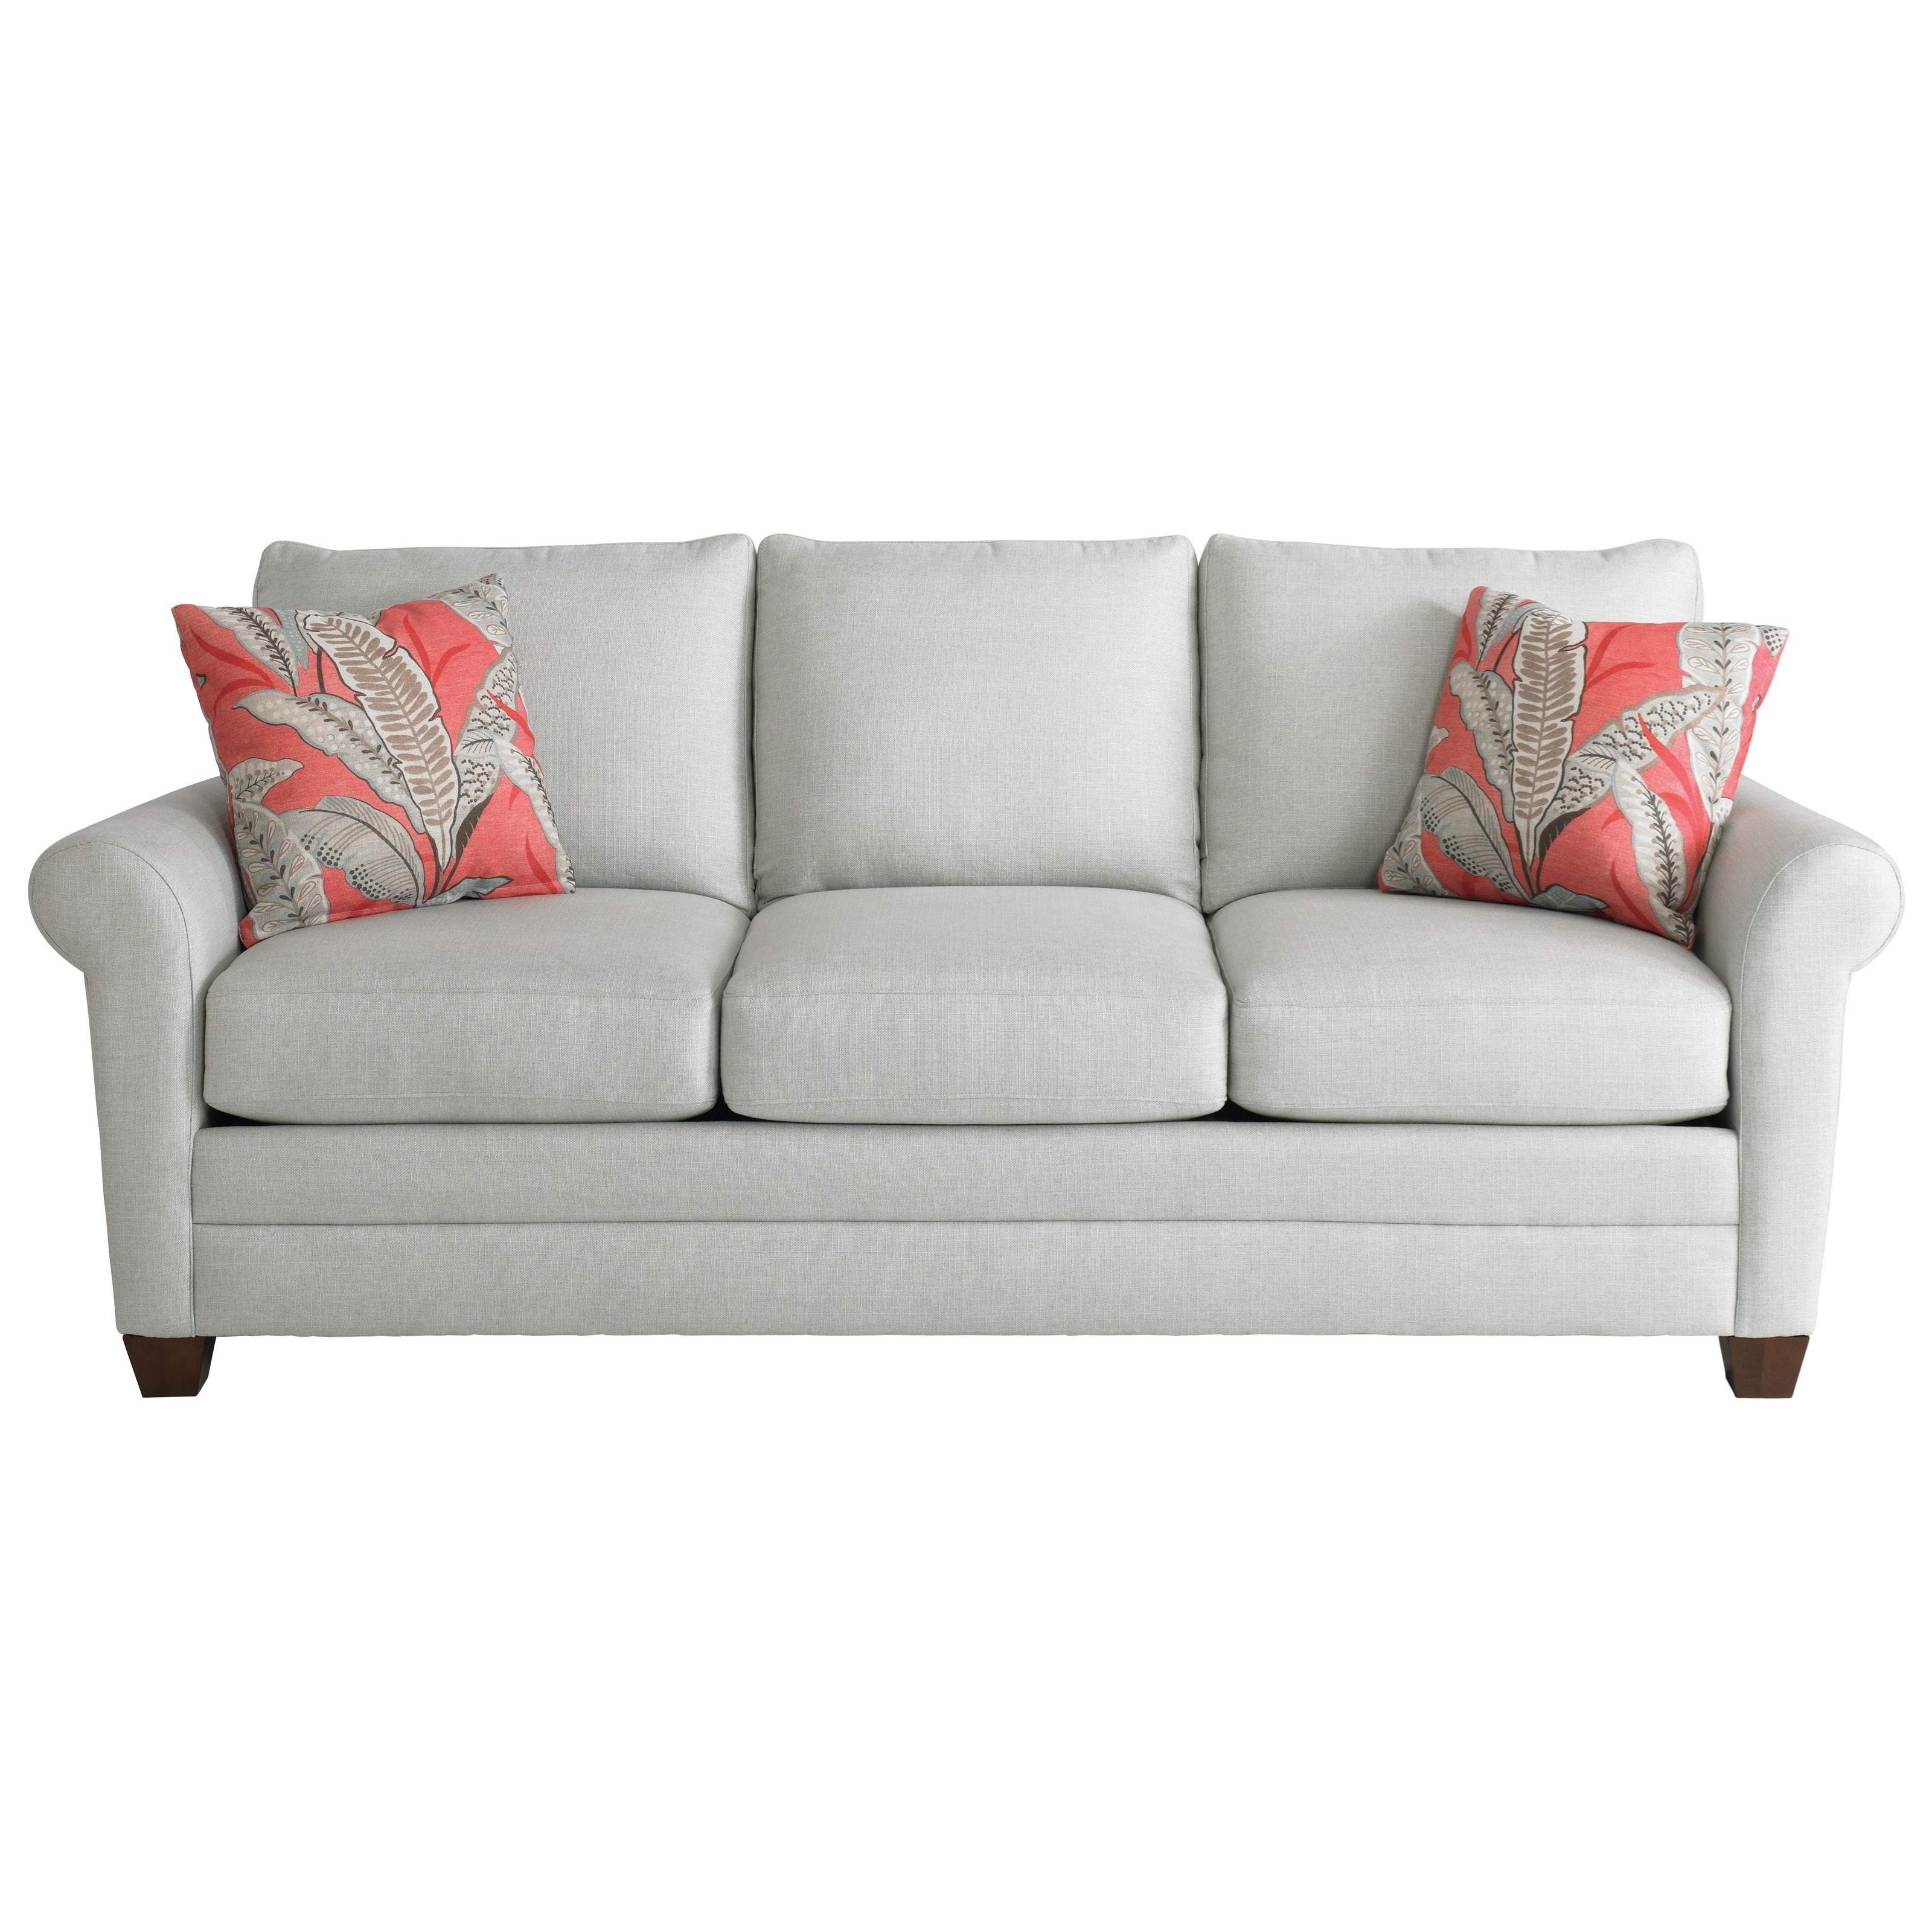 Andrew Queen Sleeper Sofa by Bassett at Esprit Decor Home Furnishings